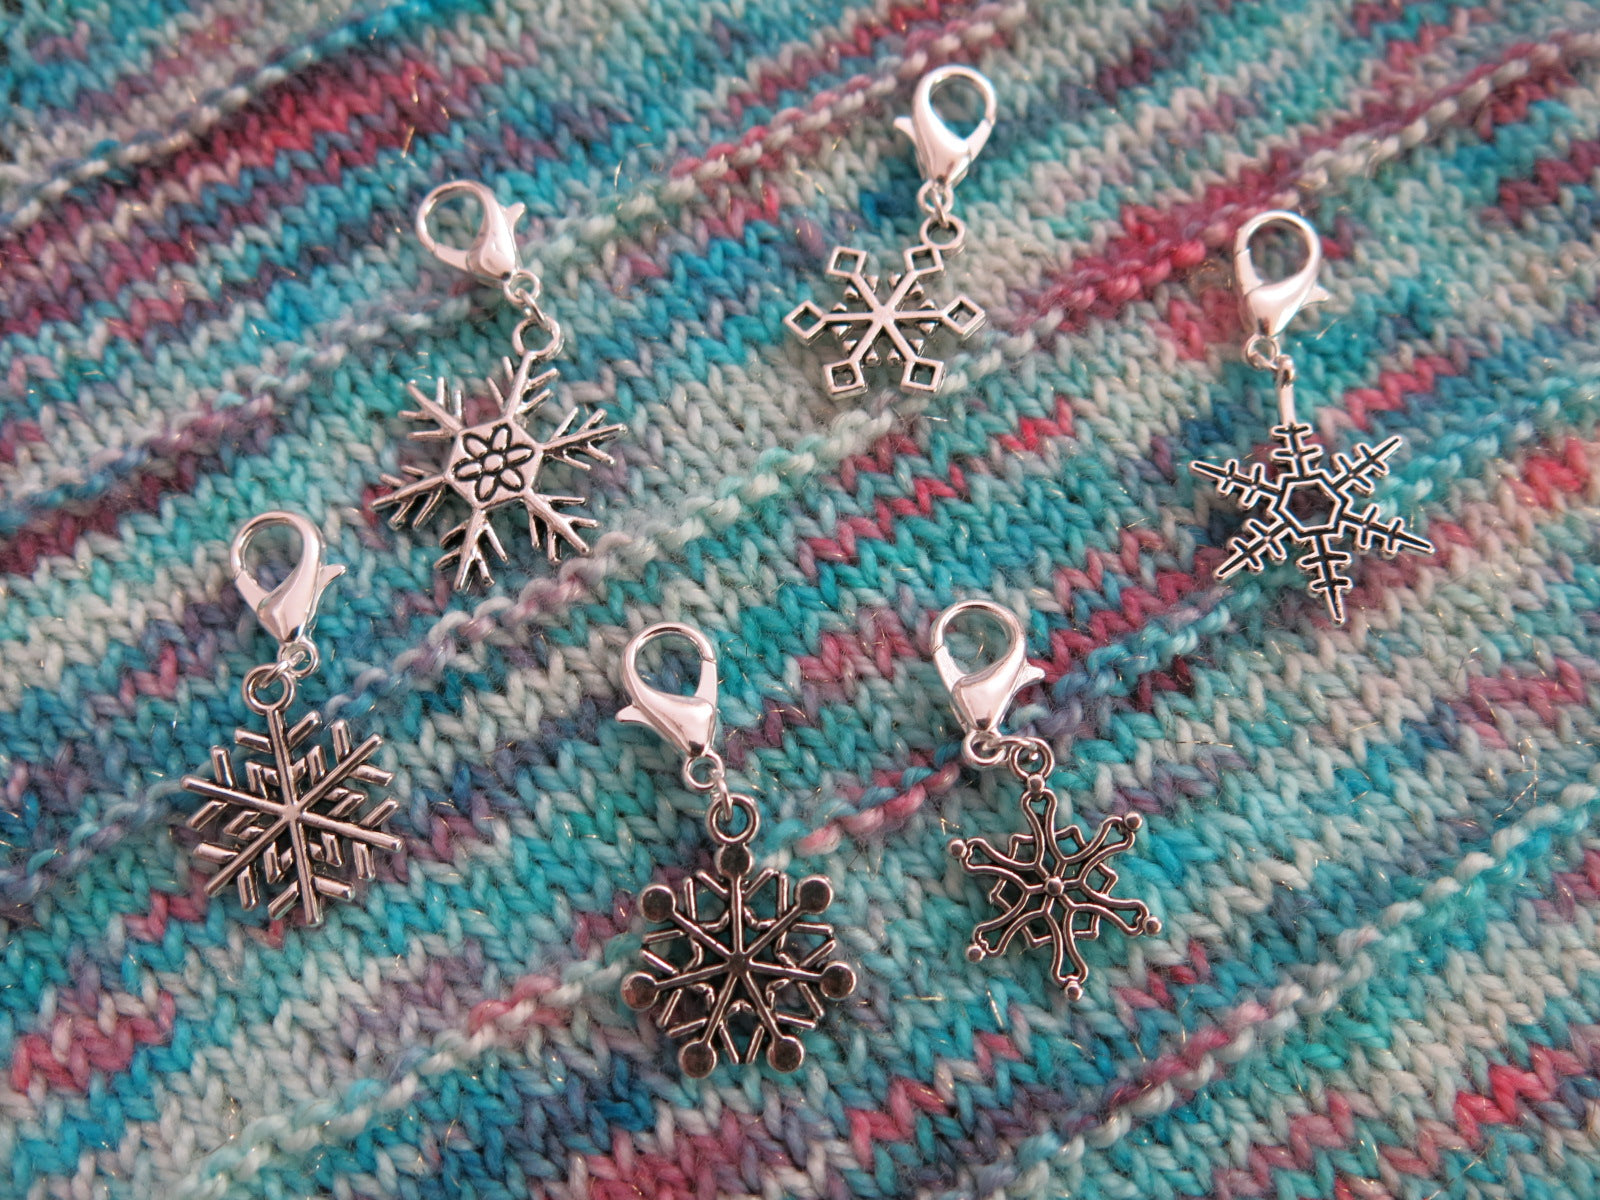 set of snowflake charms on lobster clasps for knitting and crochet